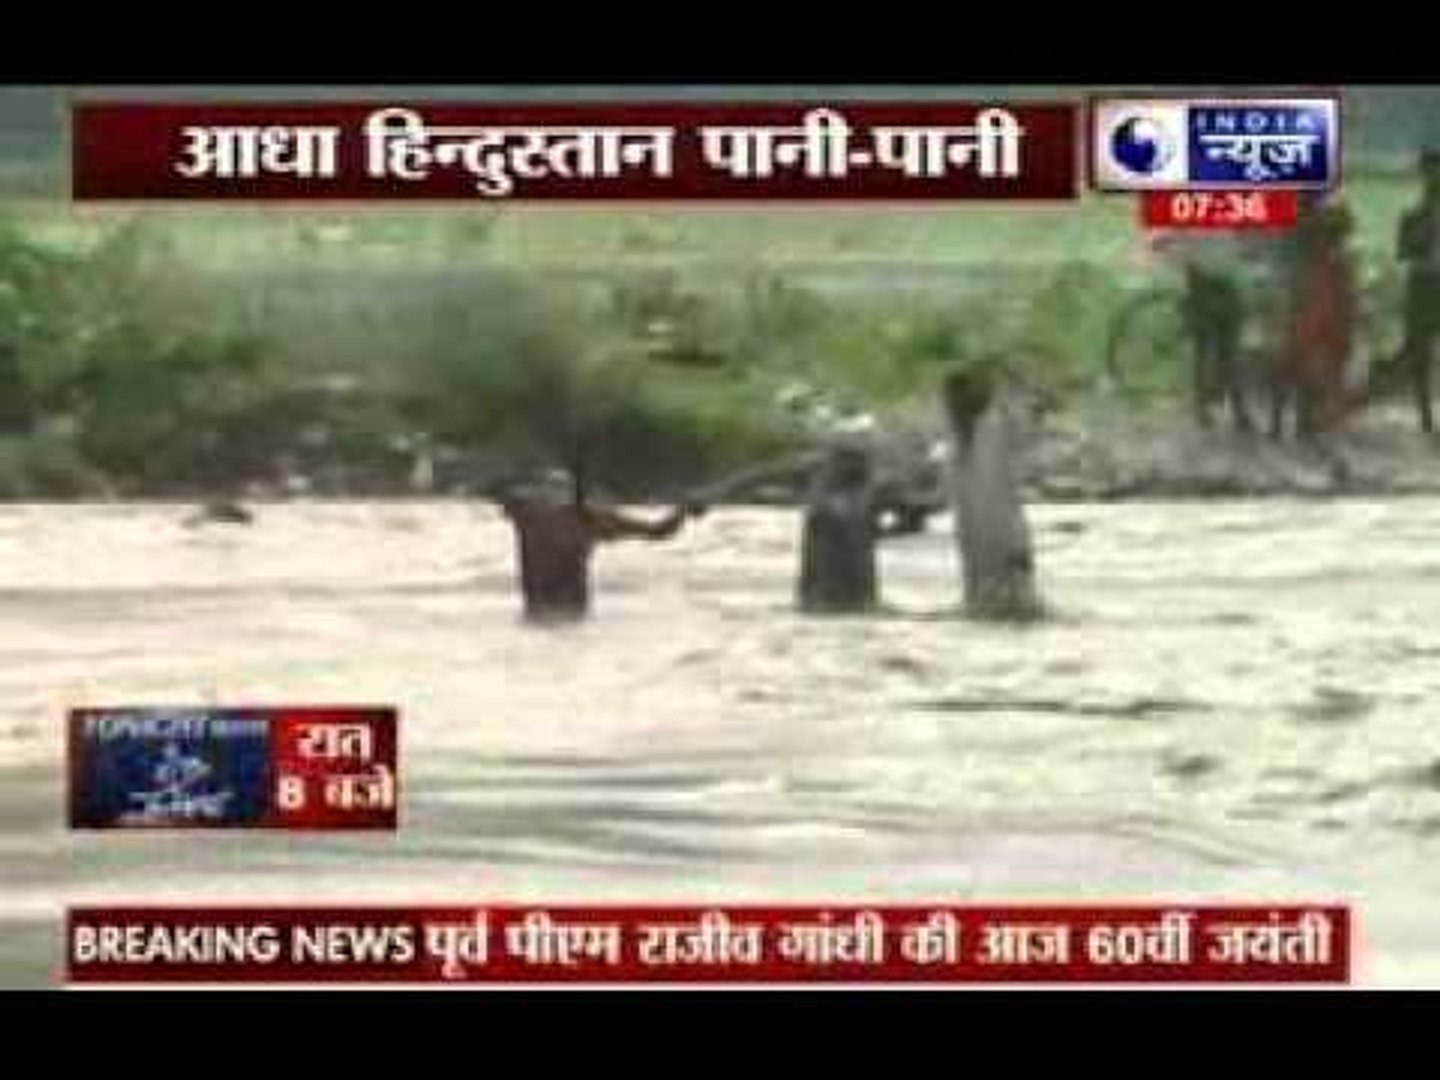 India News Biggest coverage on flood in India